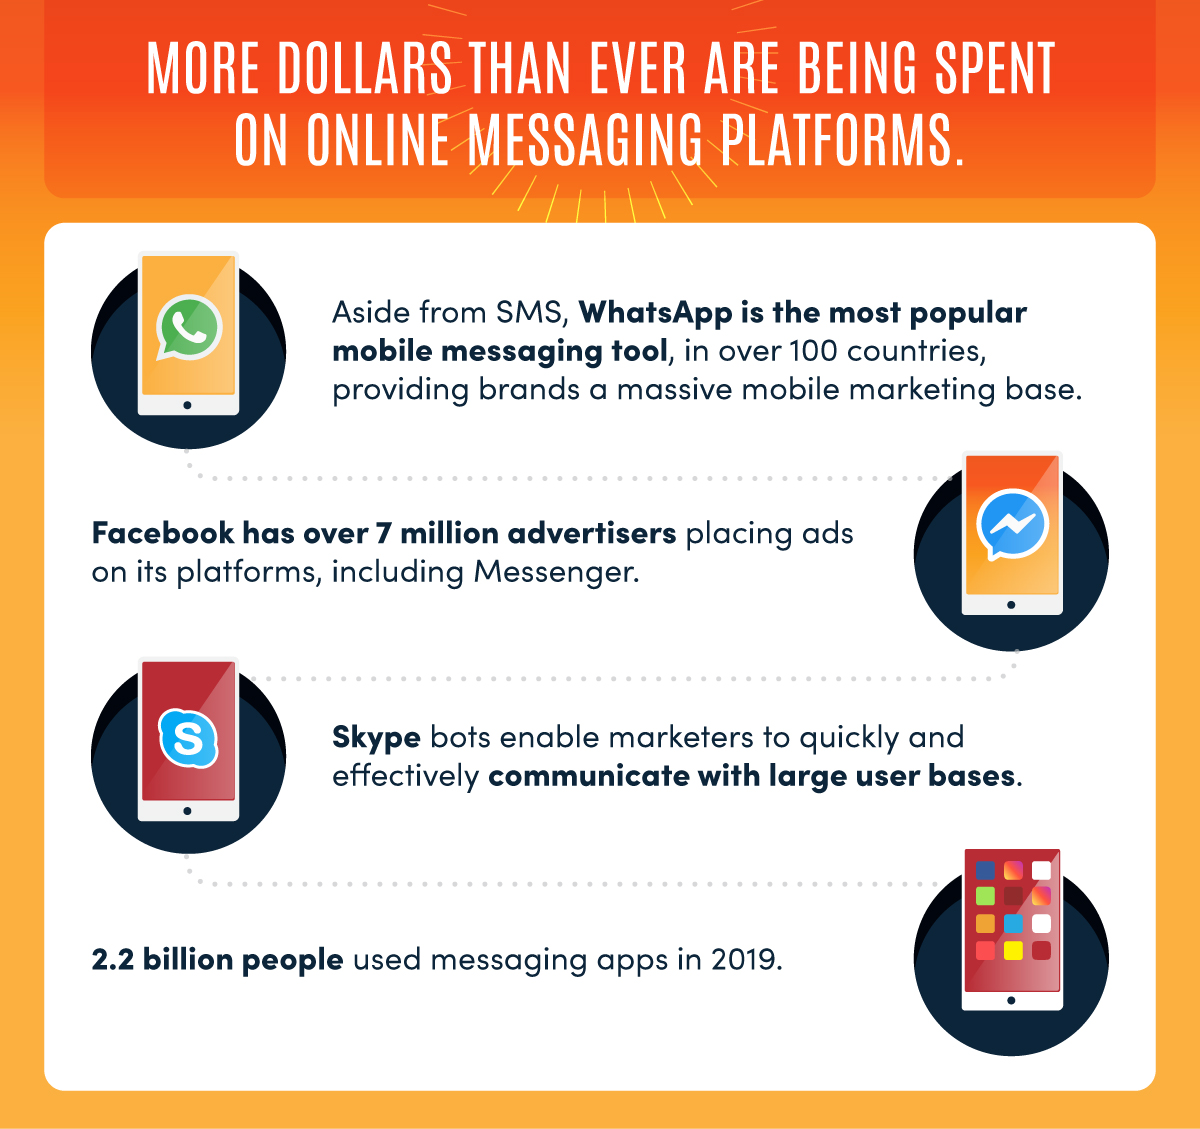 more money is being spent on online messaging platforms